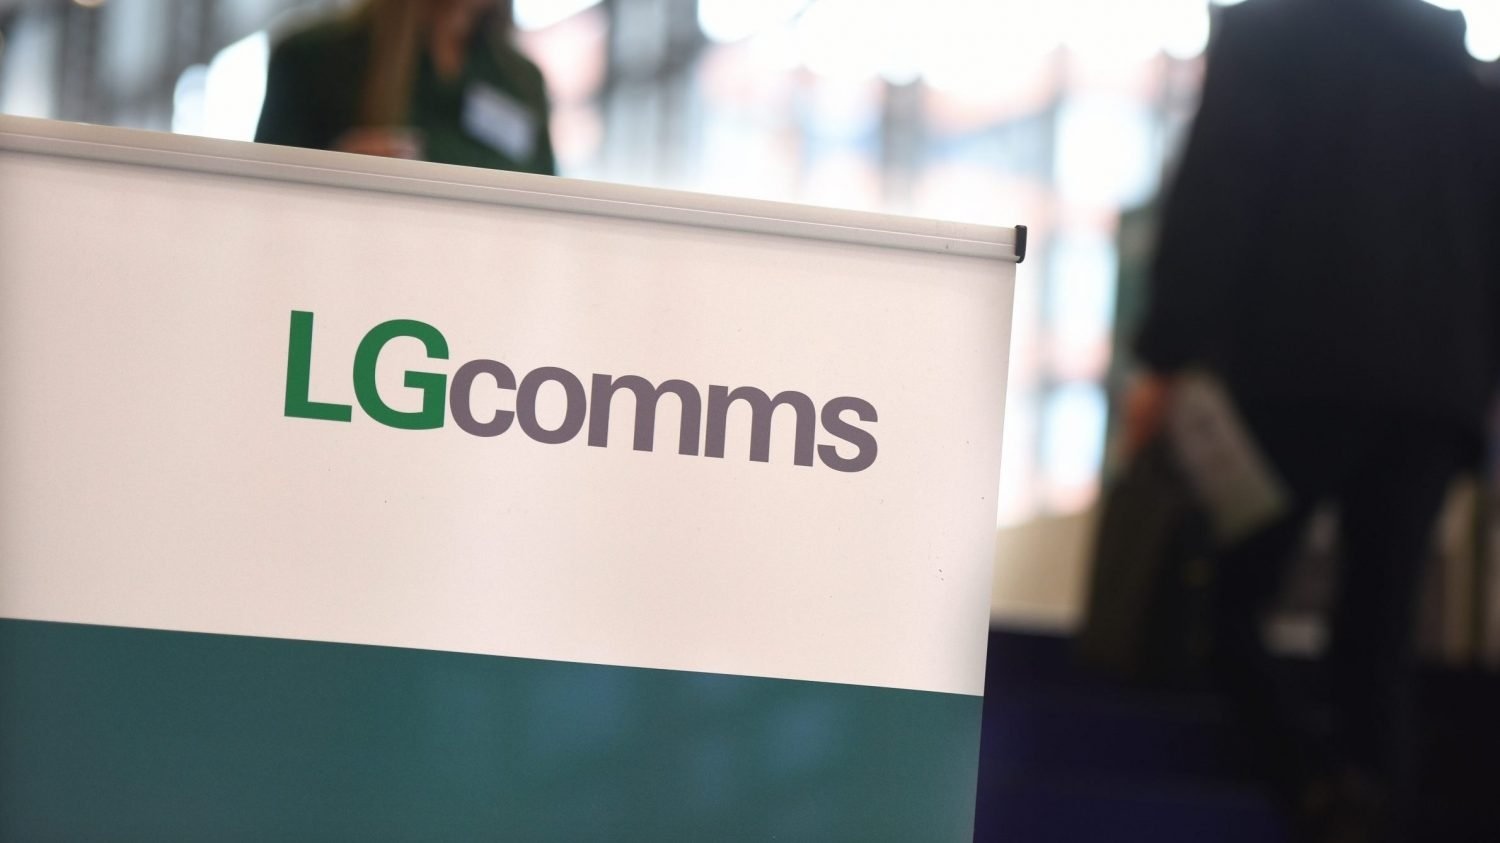 LGcomms sign at conference